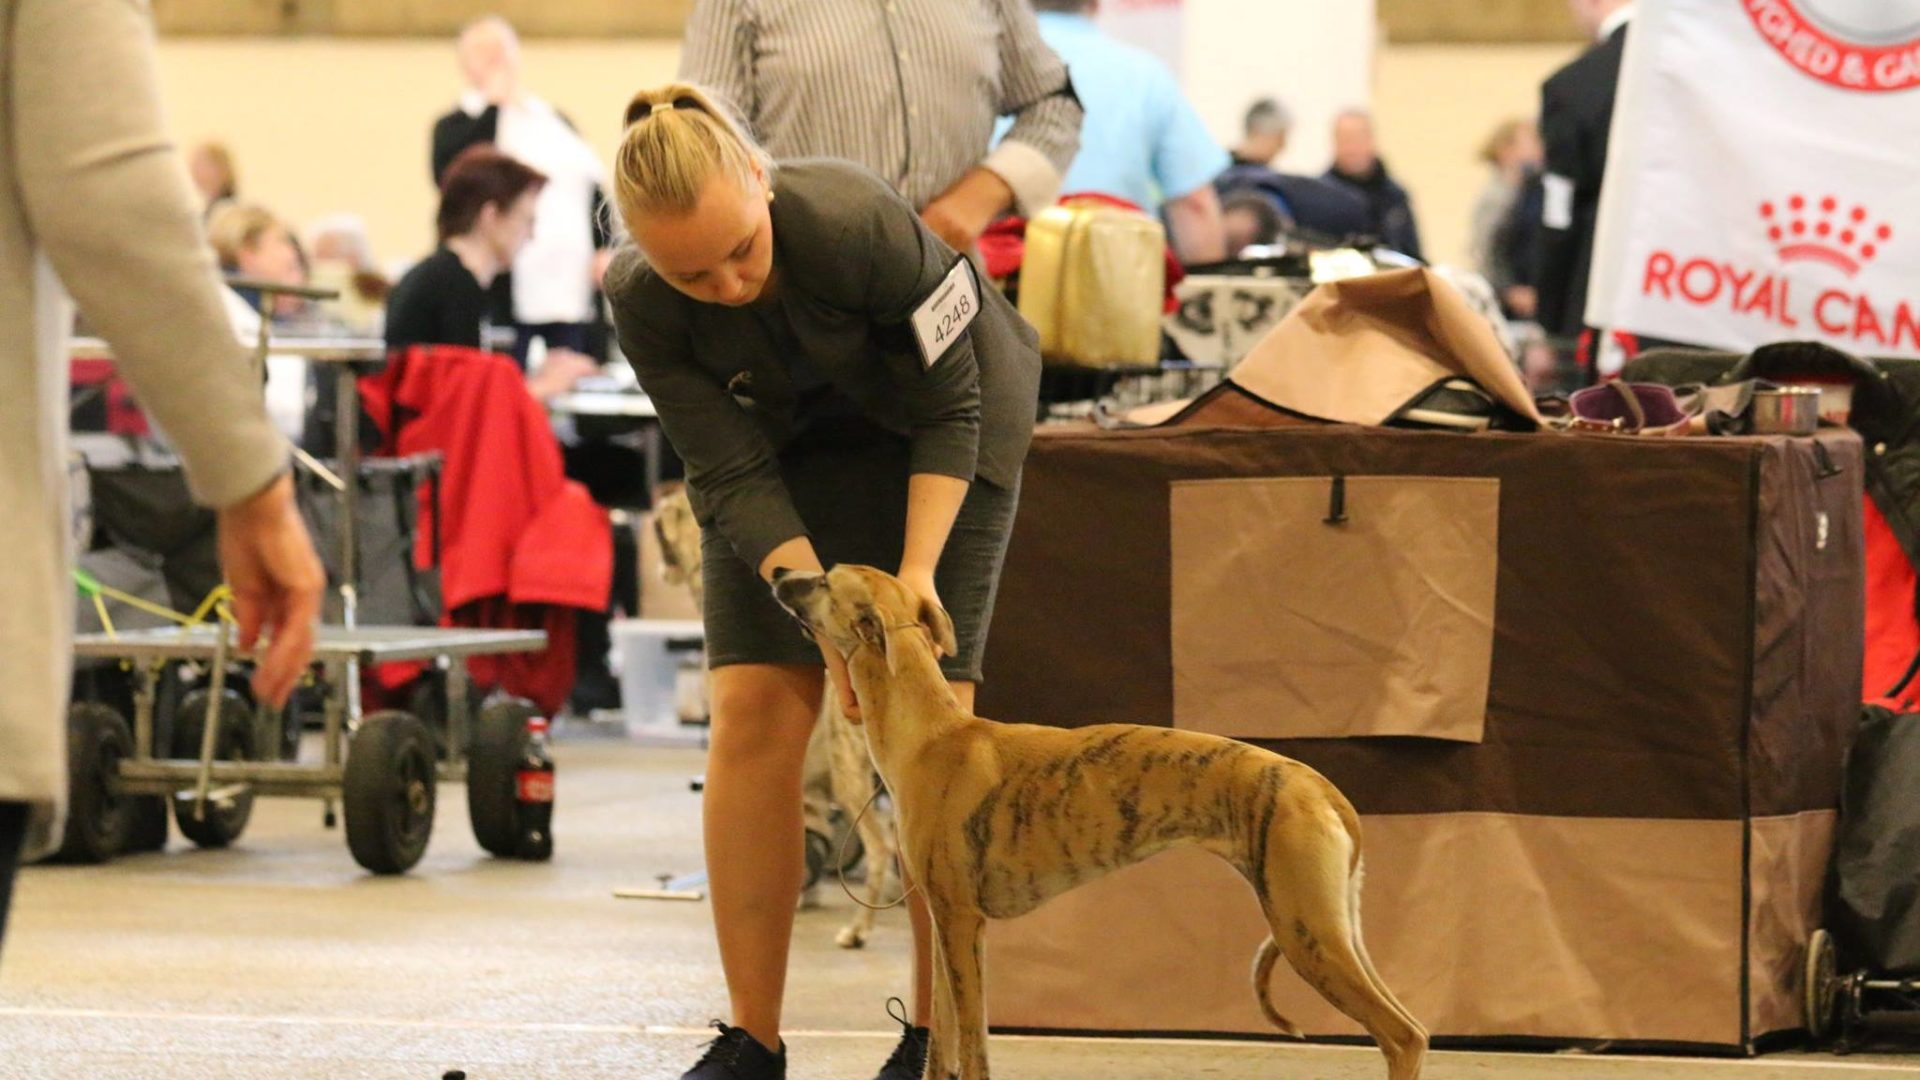 Courtborne Rose (Mia) DKK INT 2 DAY DOG SHOW, Danish Winner Show 2017